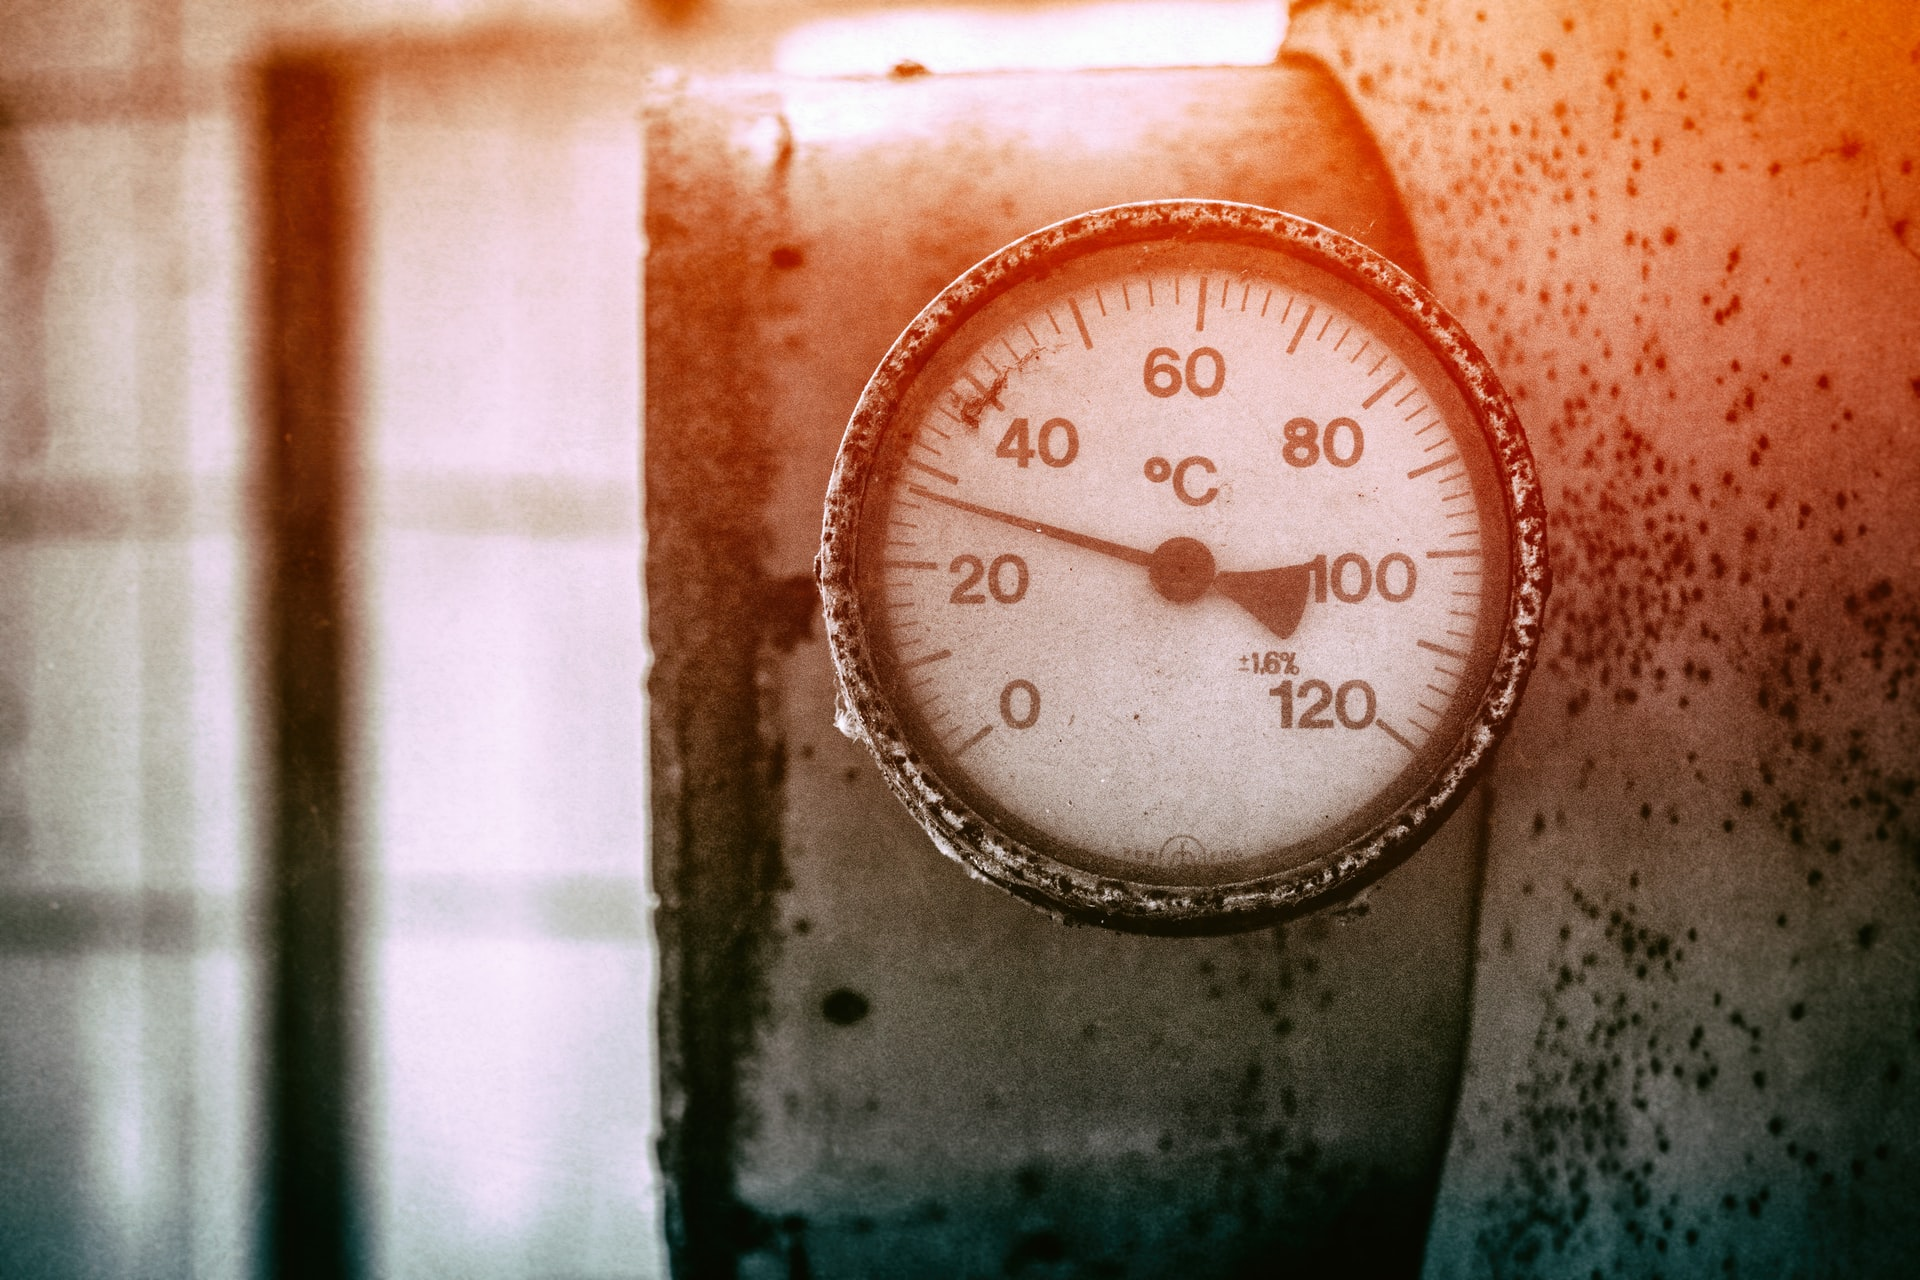 How To Choose The Right Pressure Gauge For Your Hydraulic System